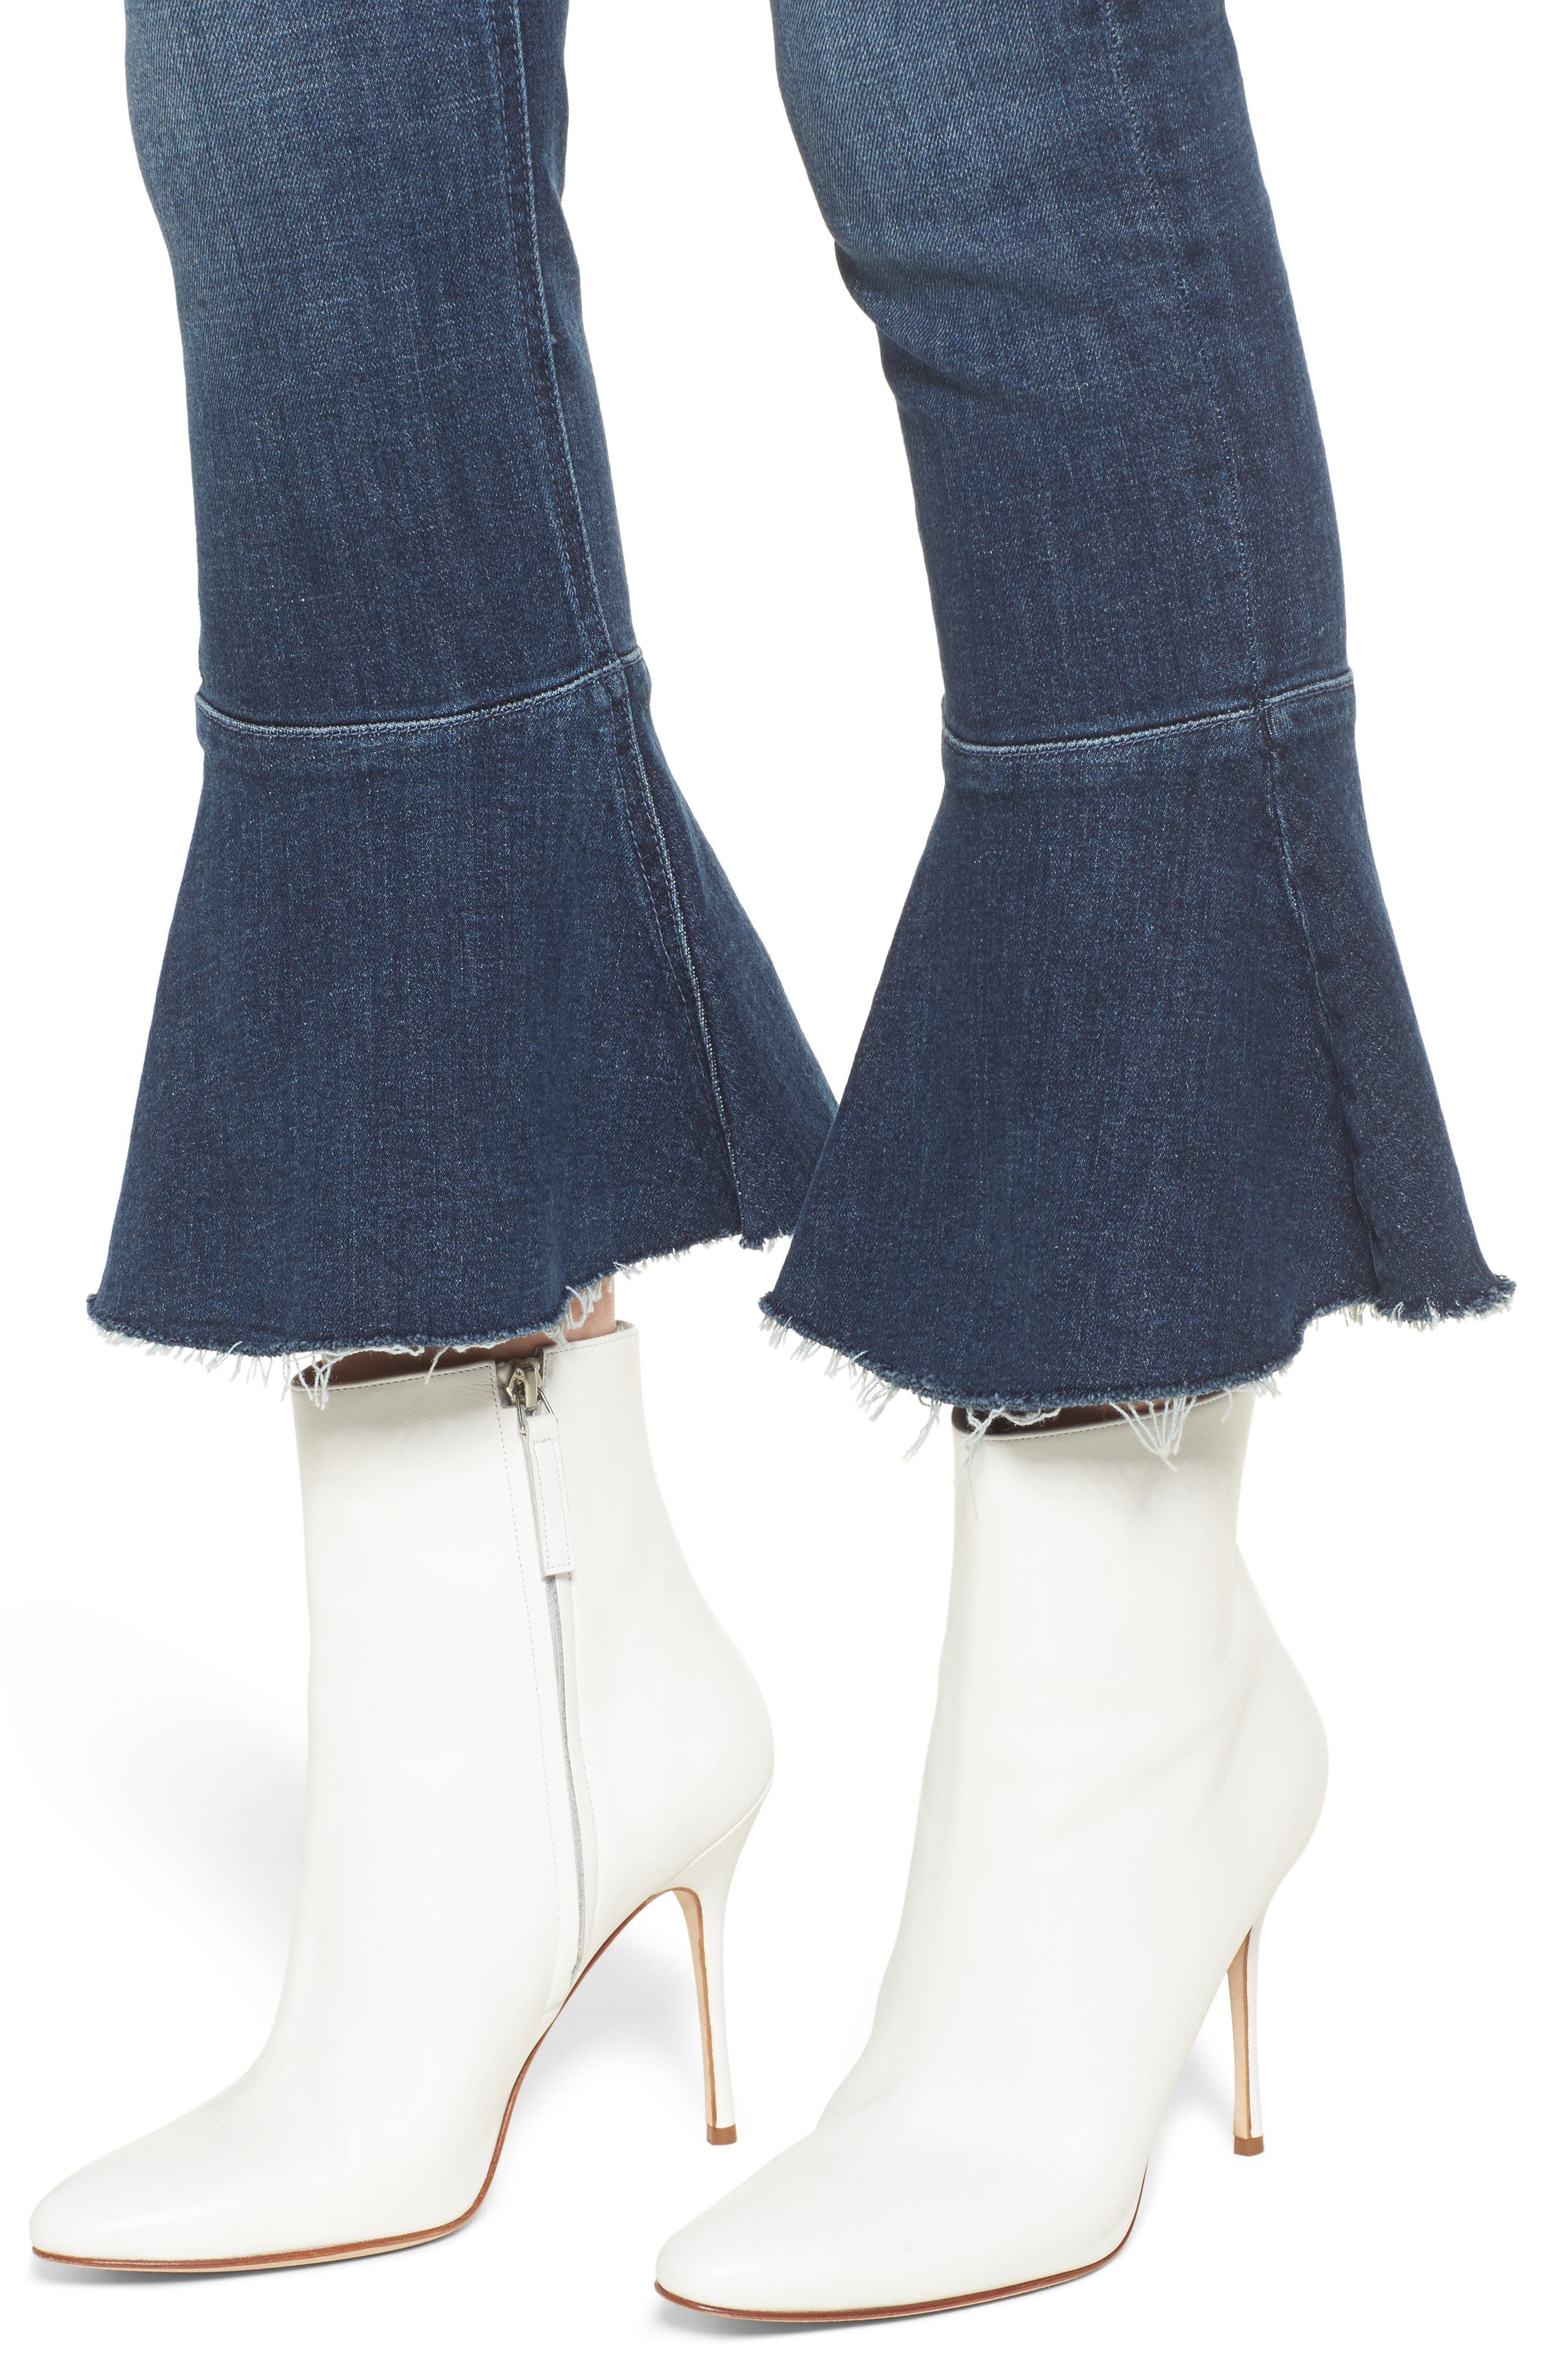 The Cha Cha Fray Flare Crop Jeans,                             Alternate thumbnail 4, color,                             GIRL CRUSH